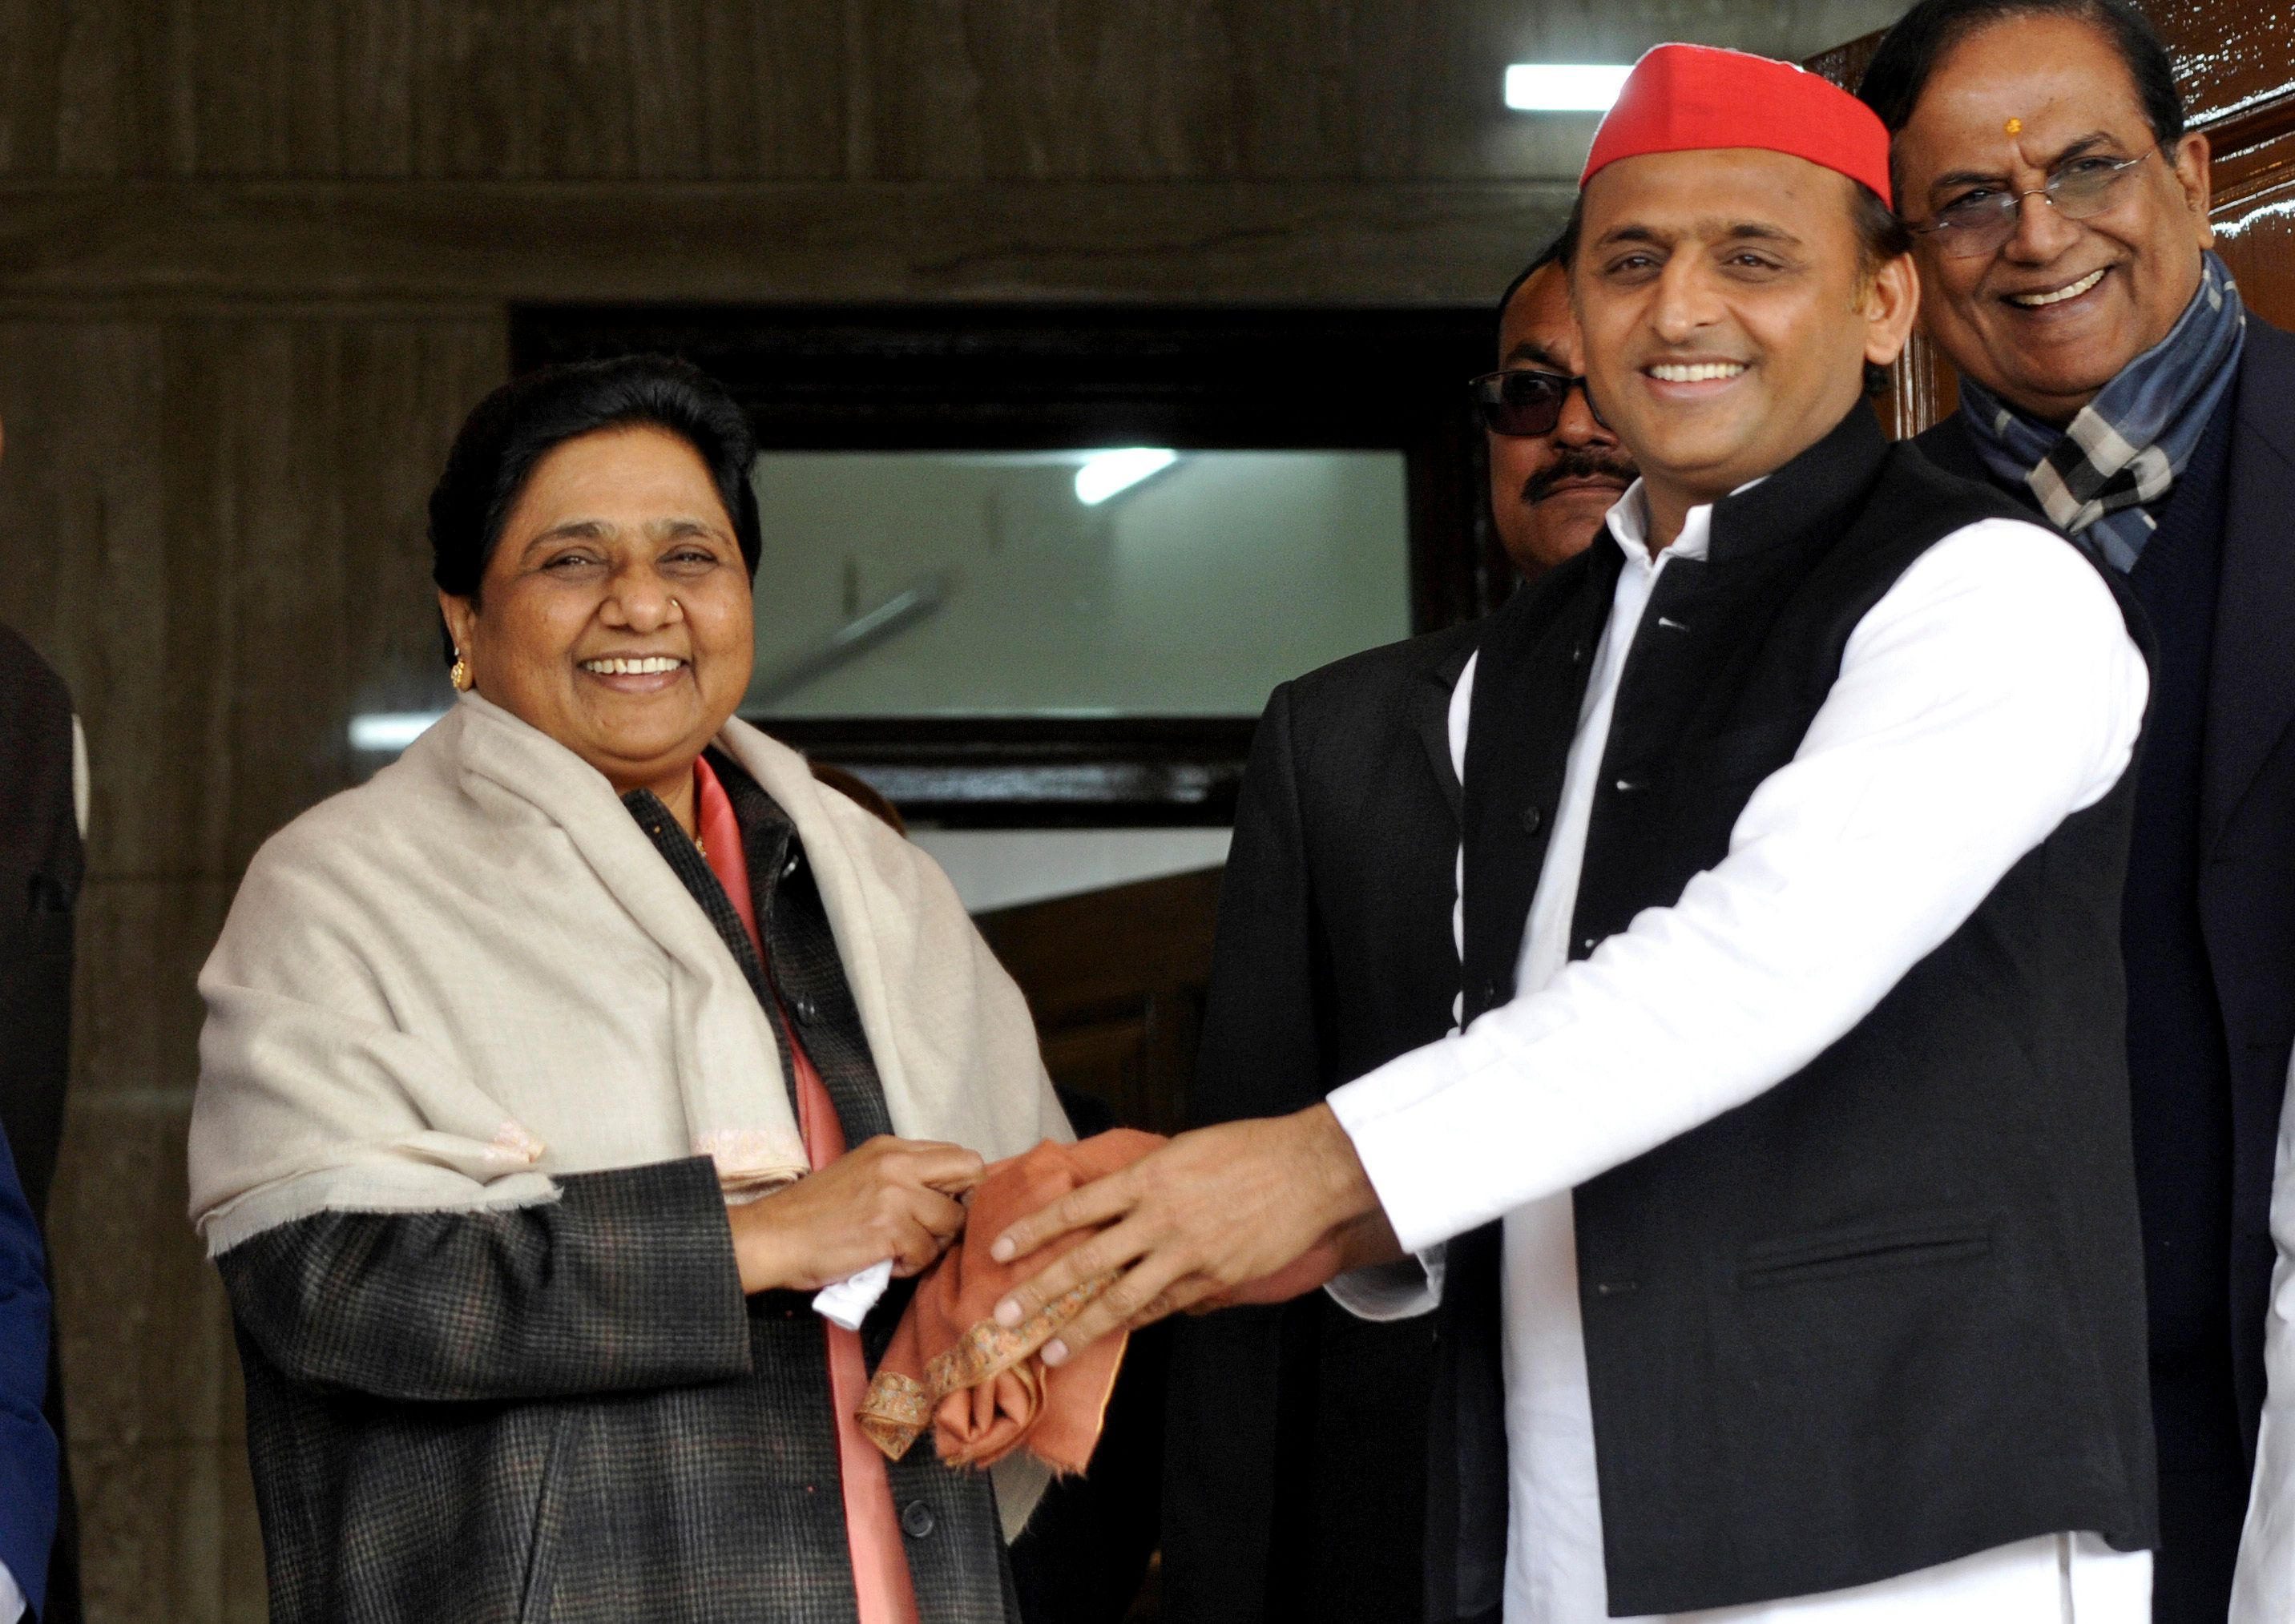 BSP Chief Mayawati Says She Will Not Contest Lok Sabha